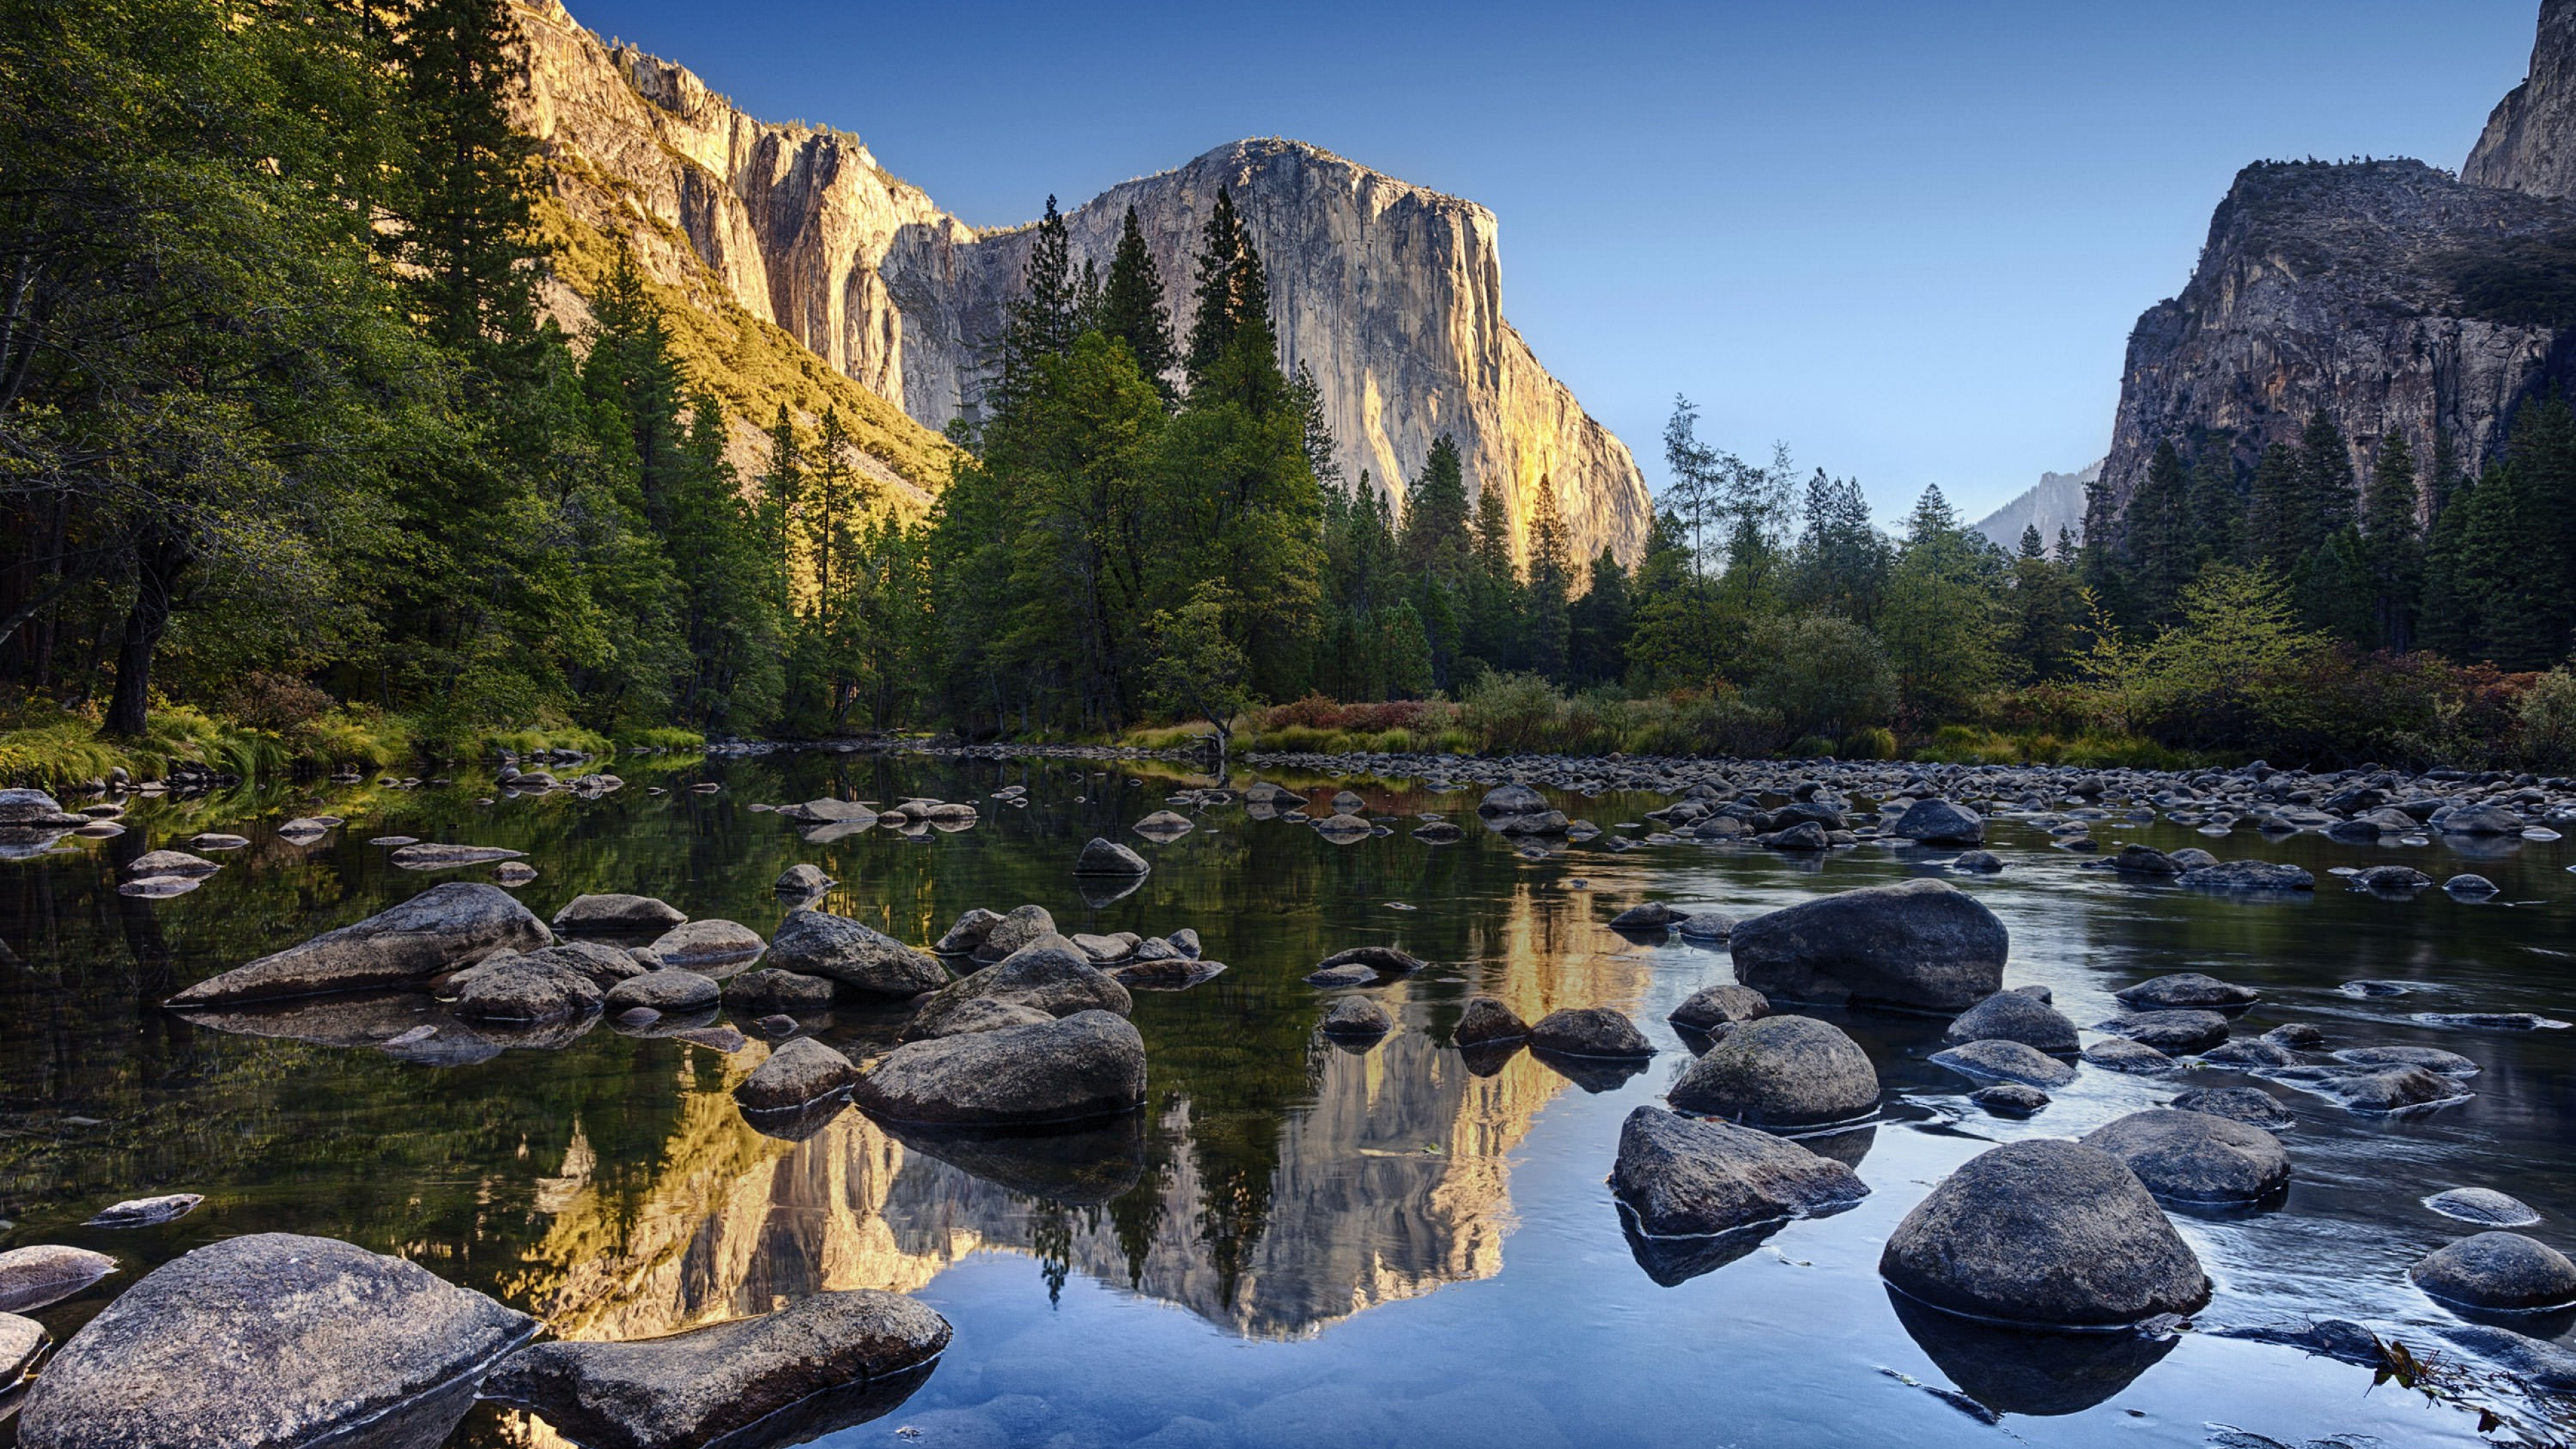 Along the Merced river in Yosemite National Park